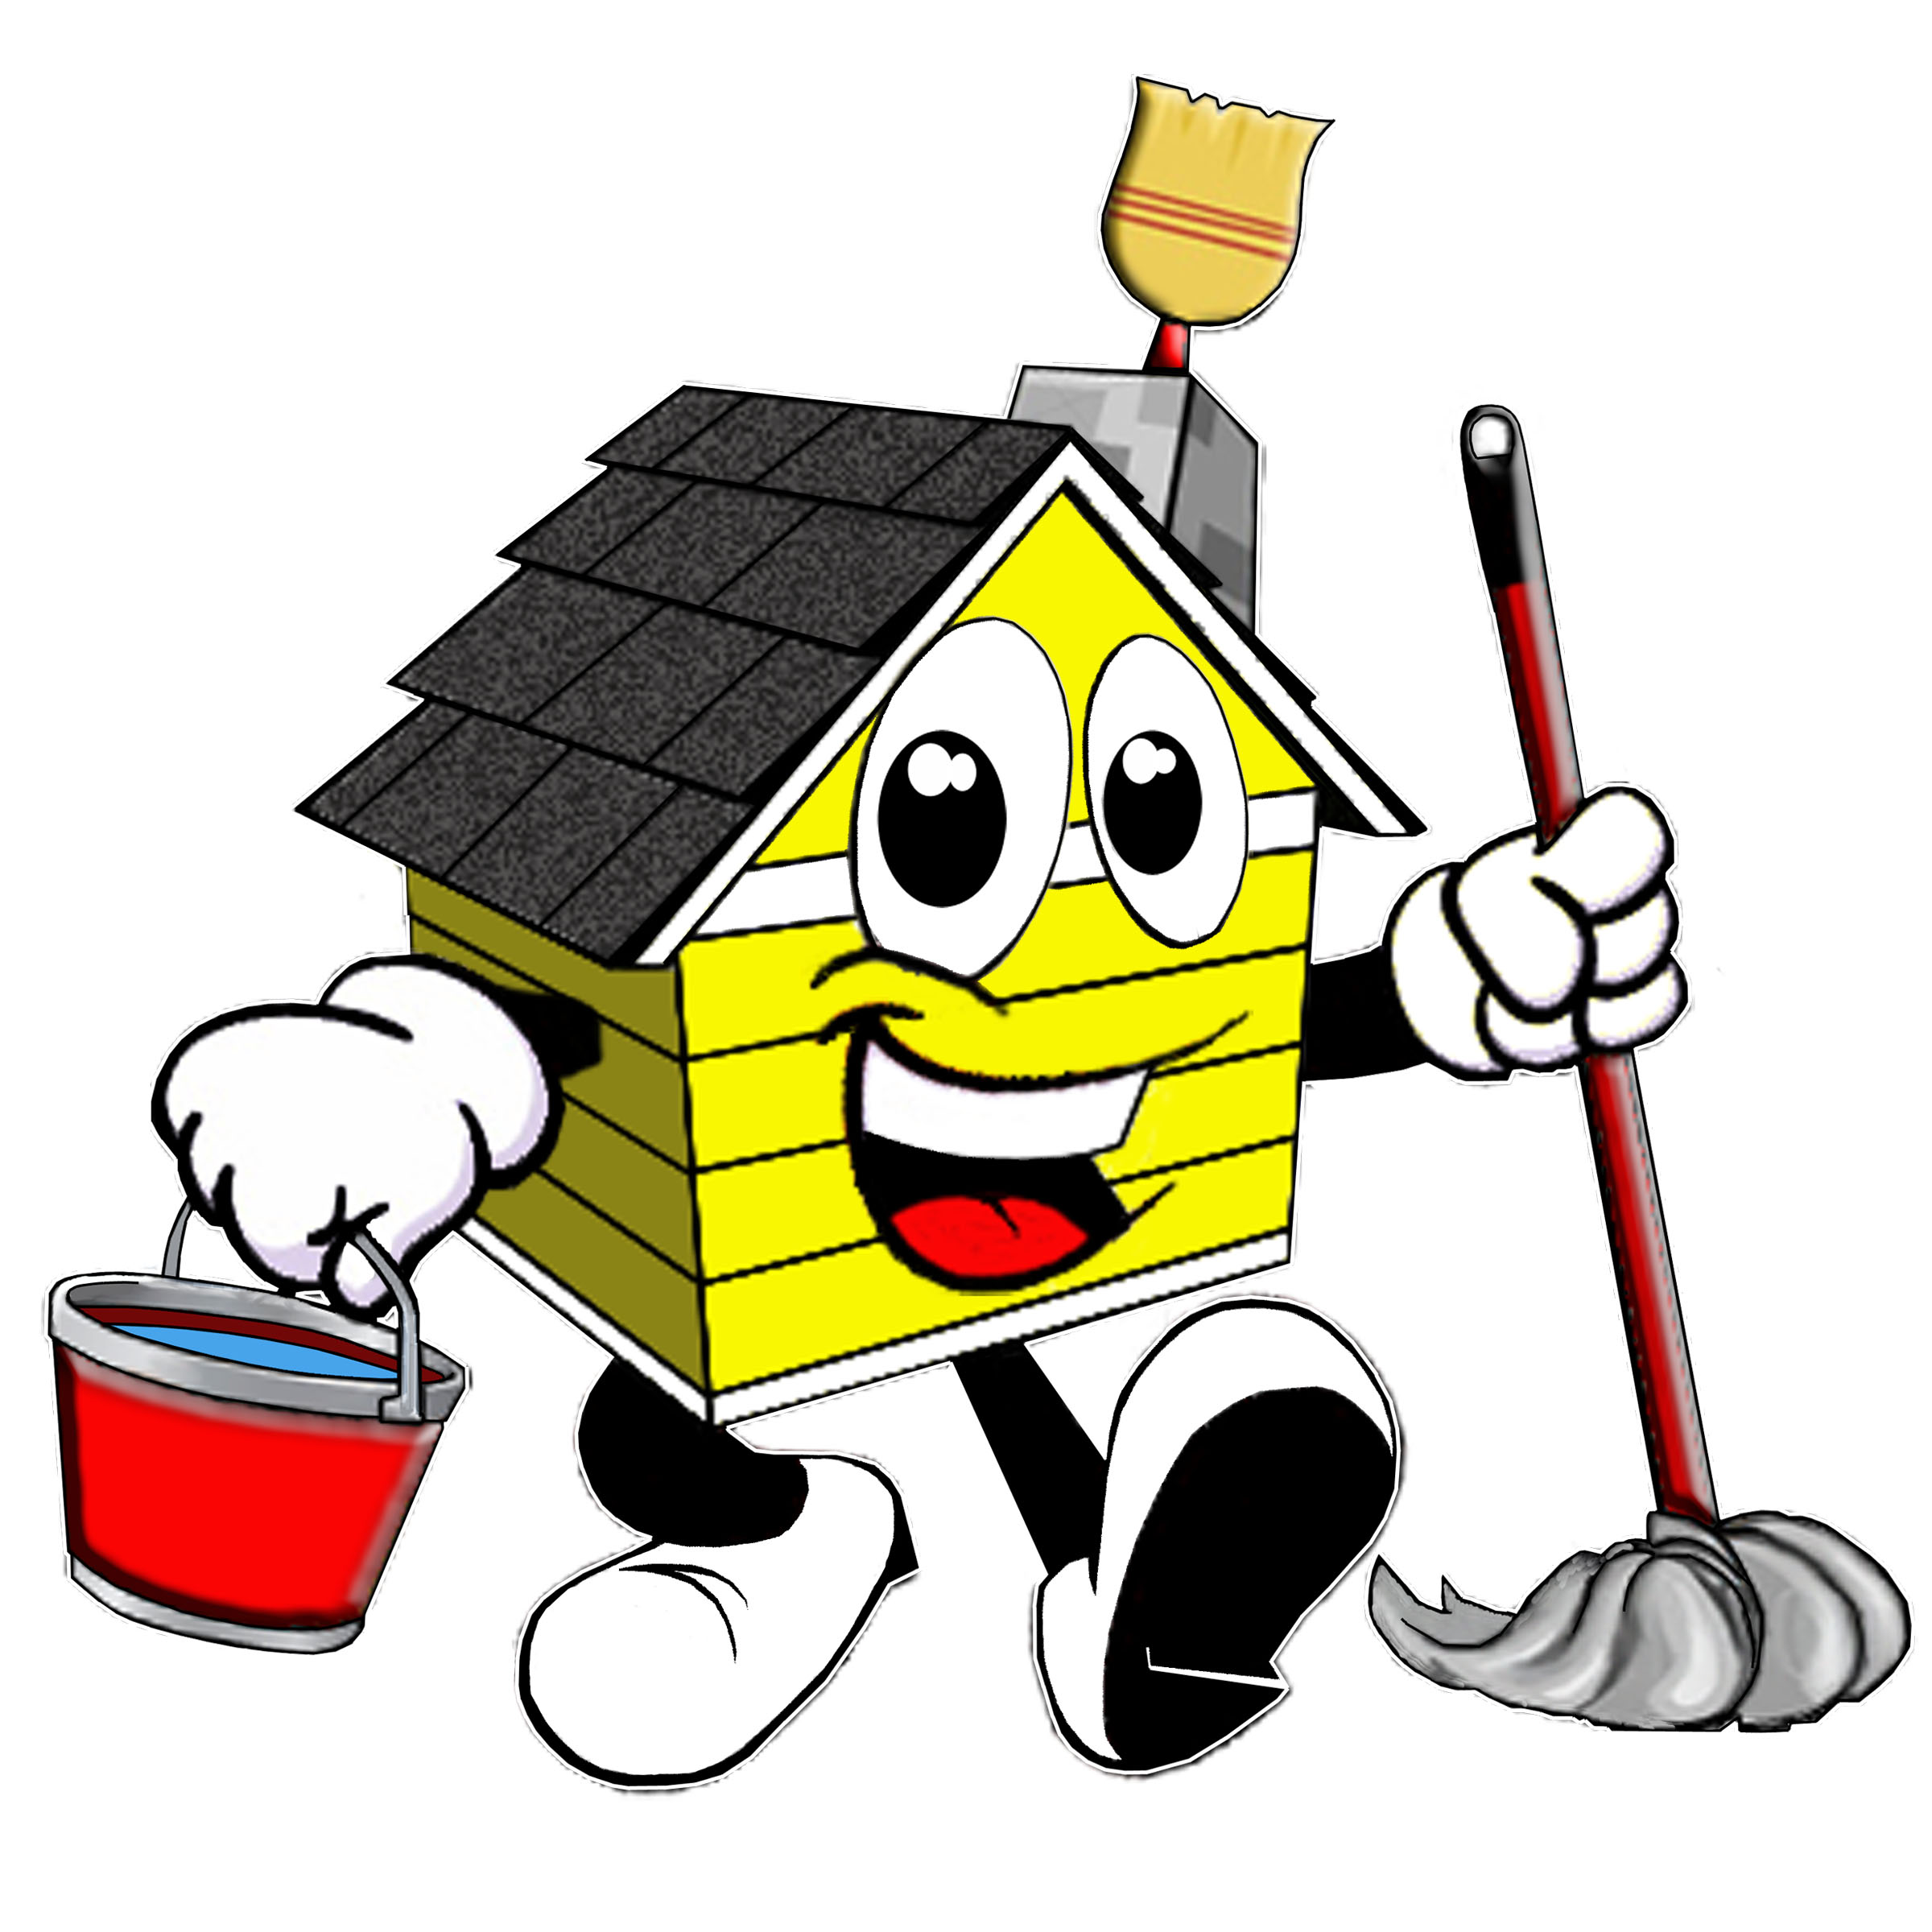 House Cleaning: Professional Cartoon House Cleaning Logos.